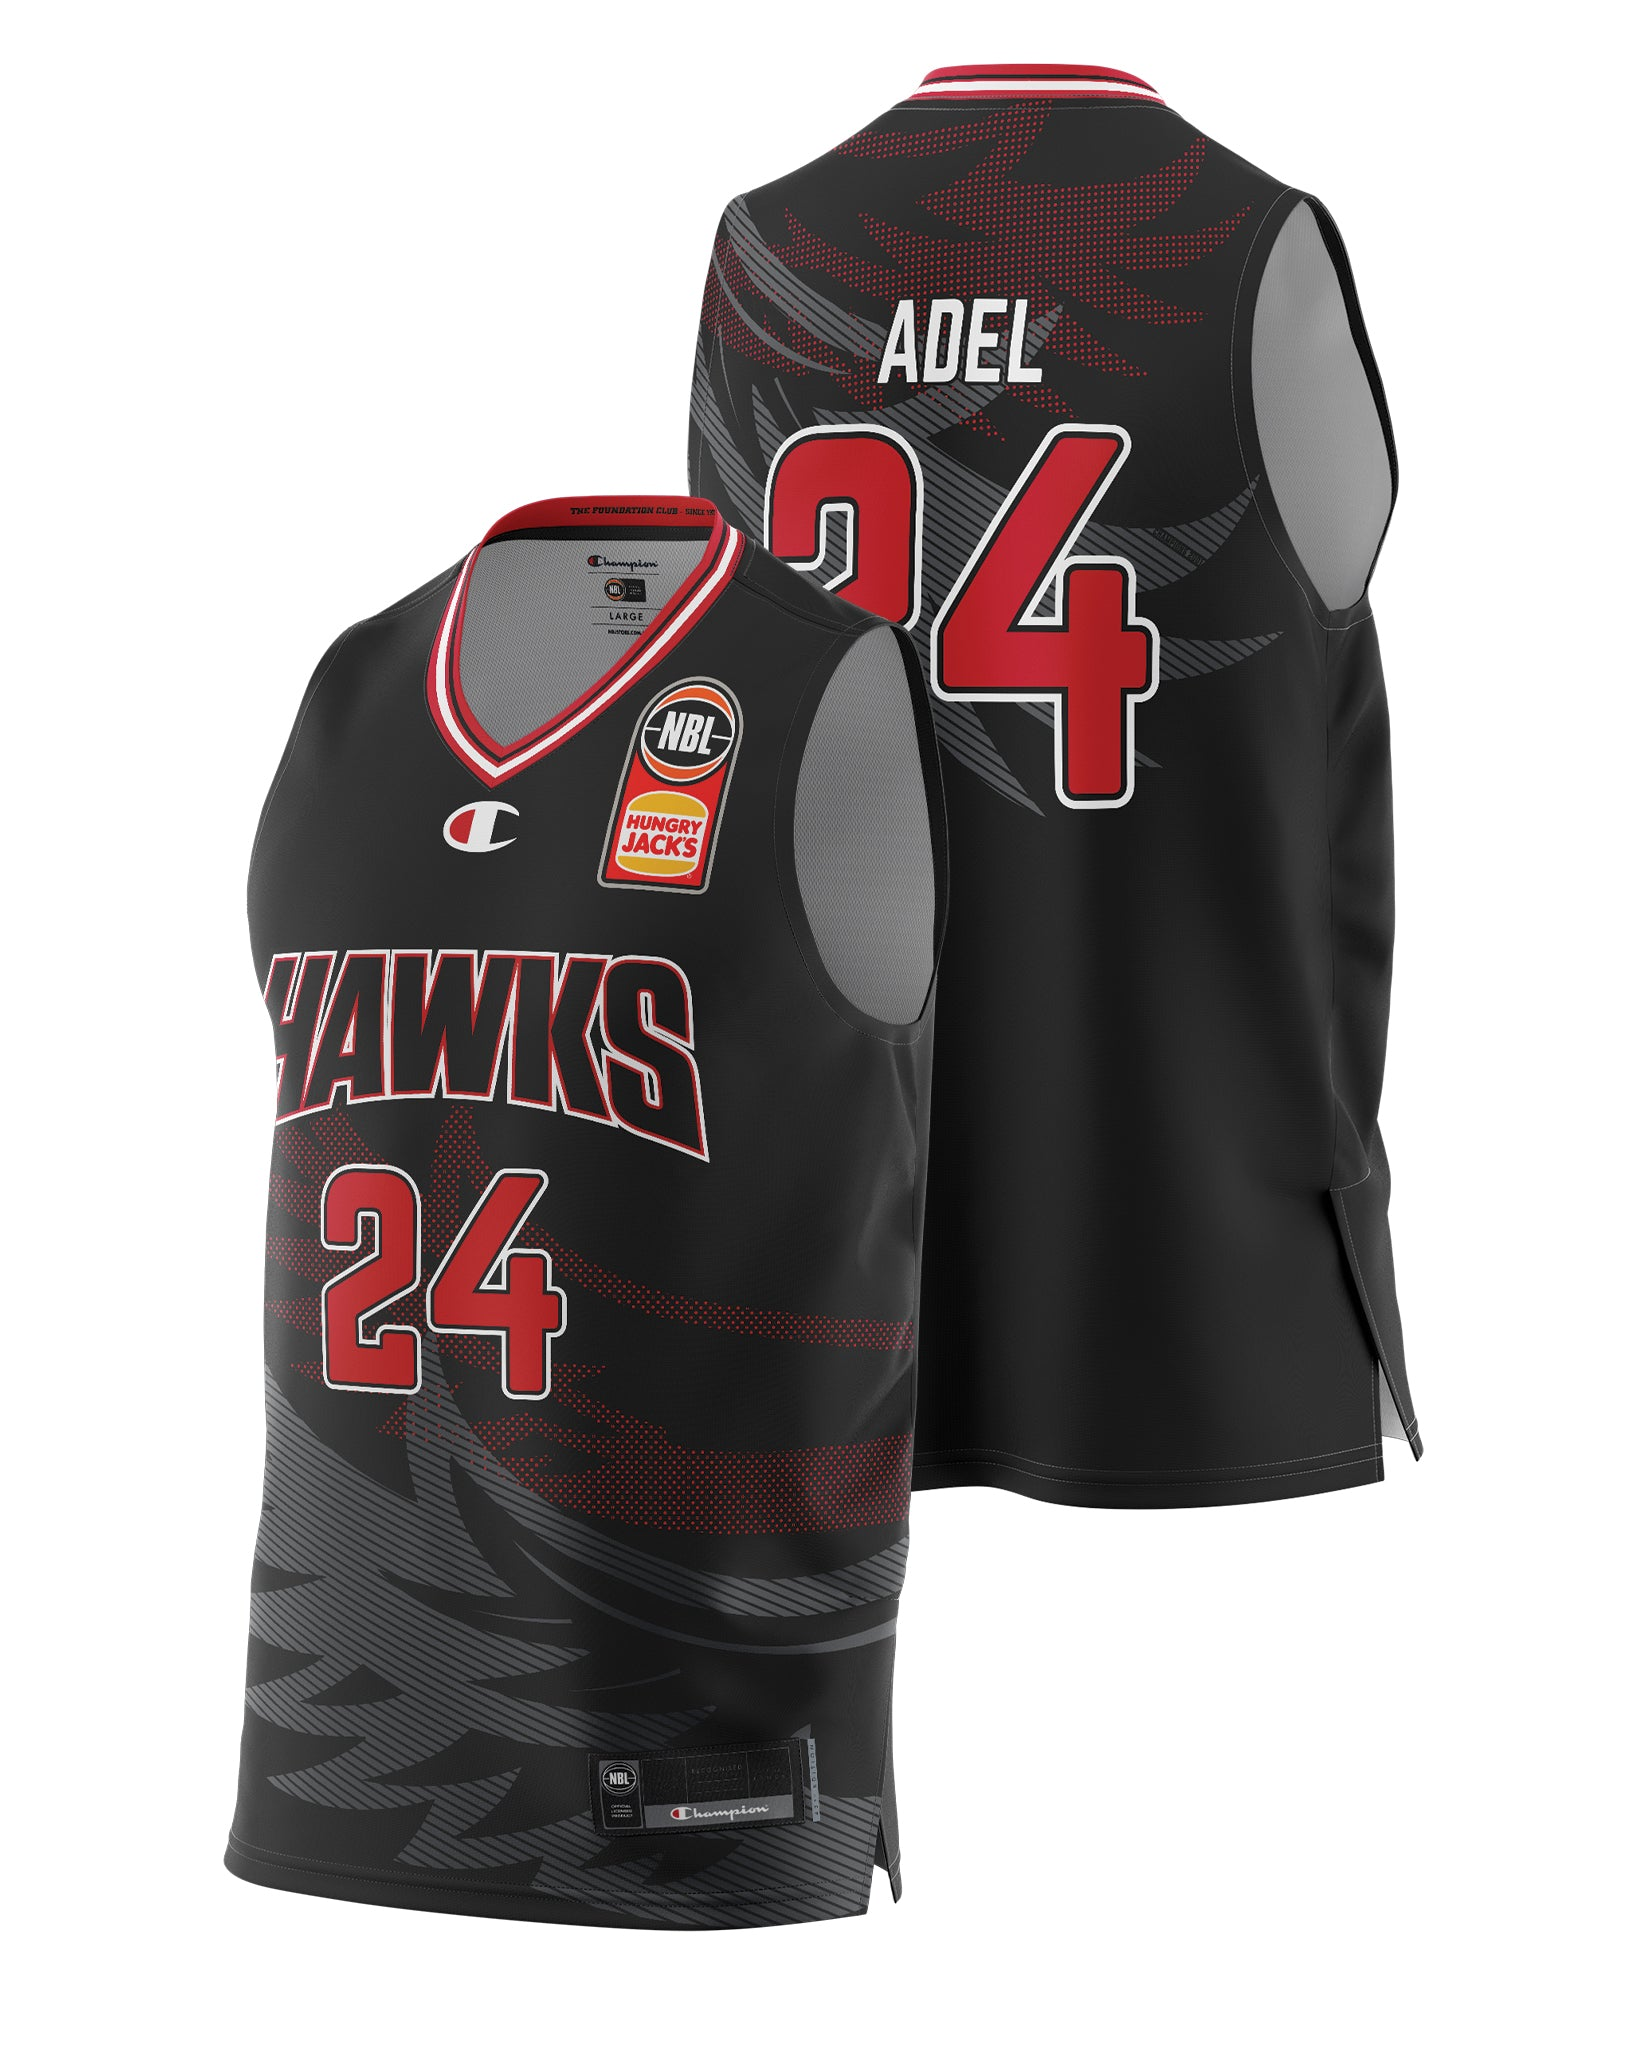 Hawks 20/21 Authentic Home Jersey - Deng Adel